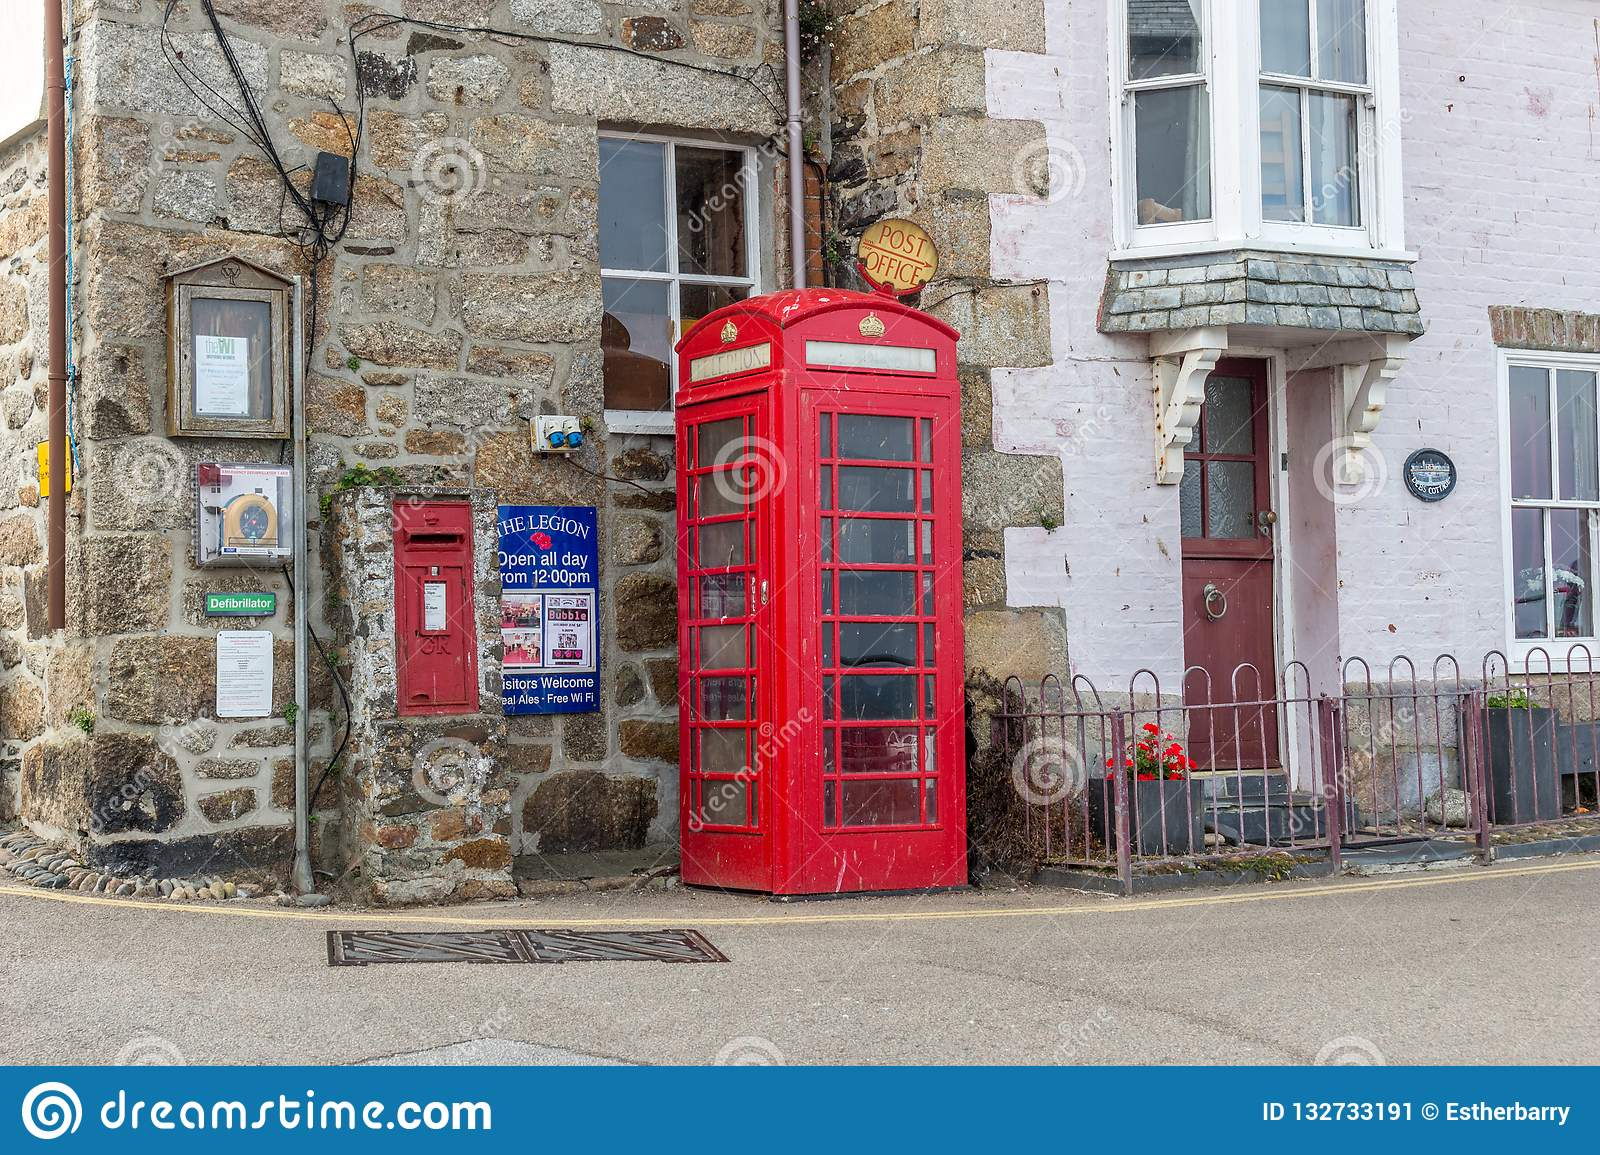 Traditional iconic British red telephone box in a street in Cornwall, England